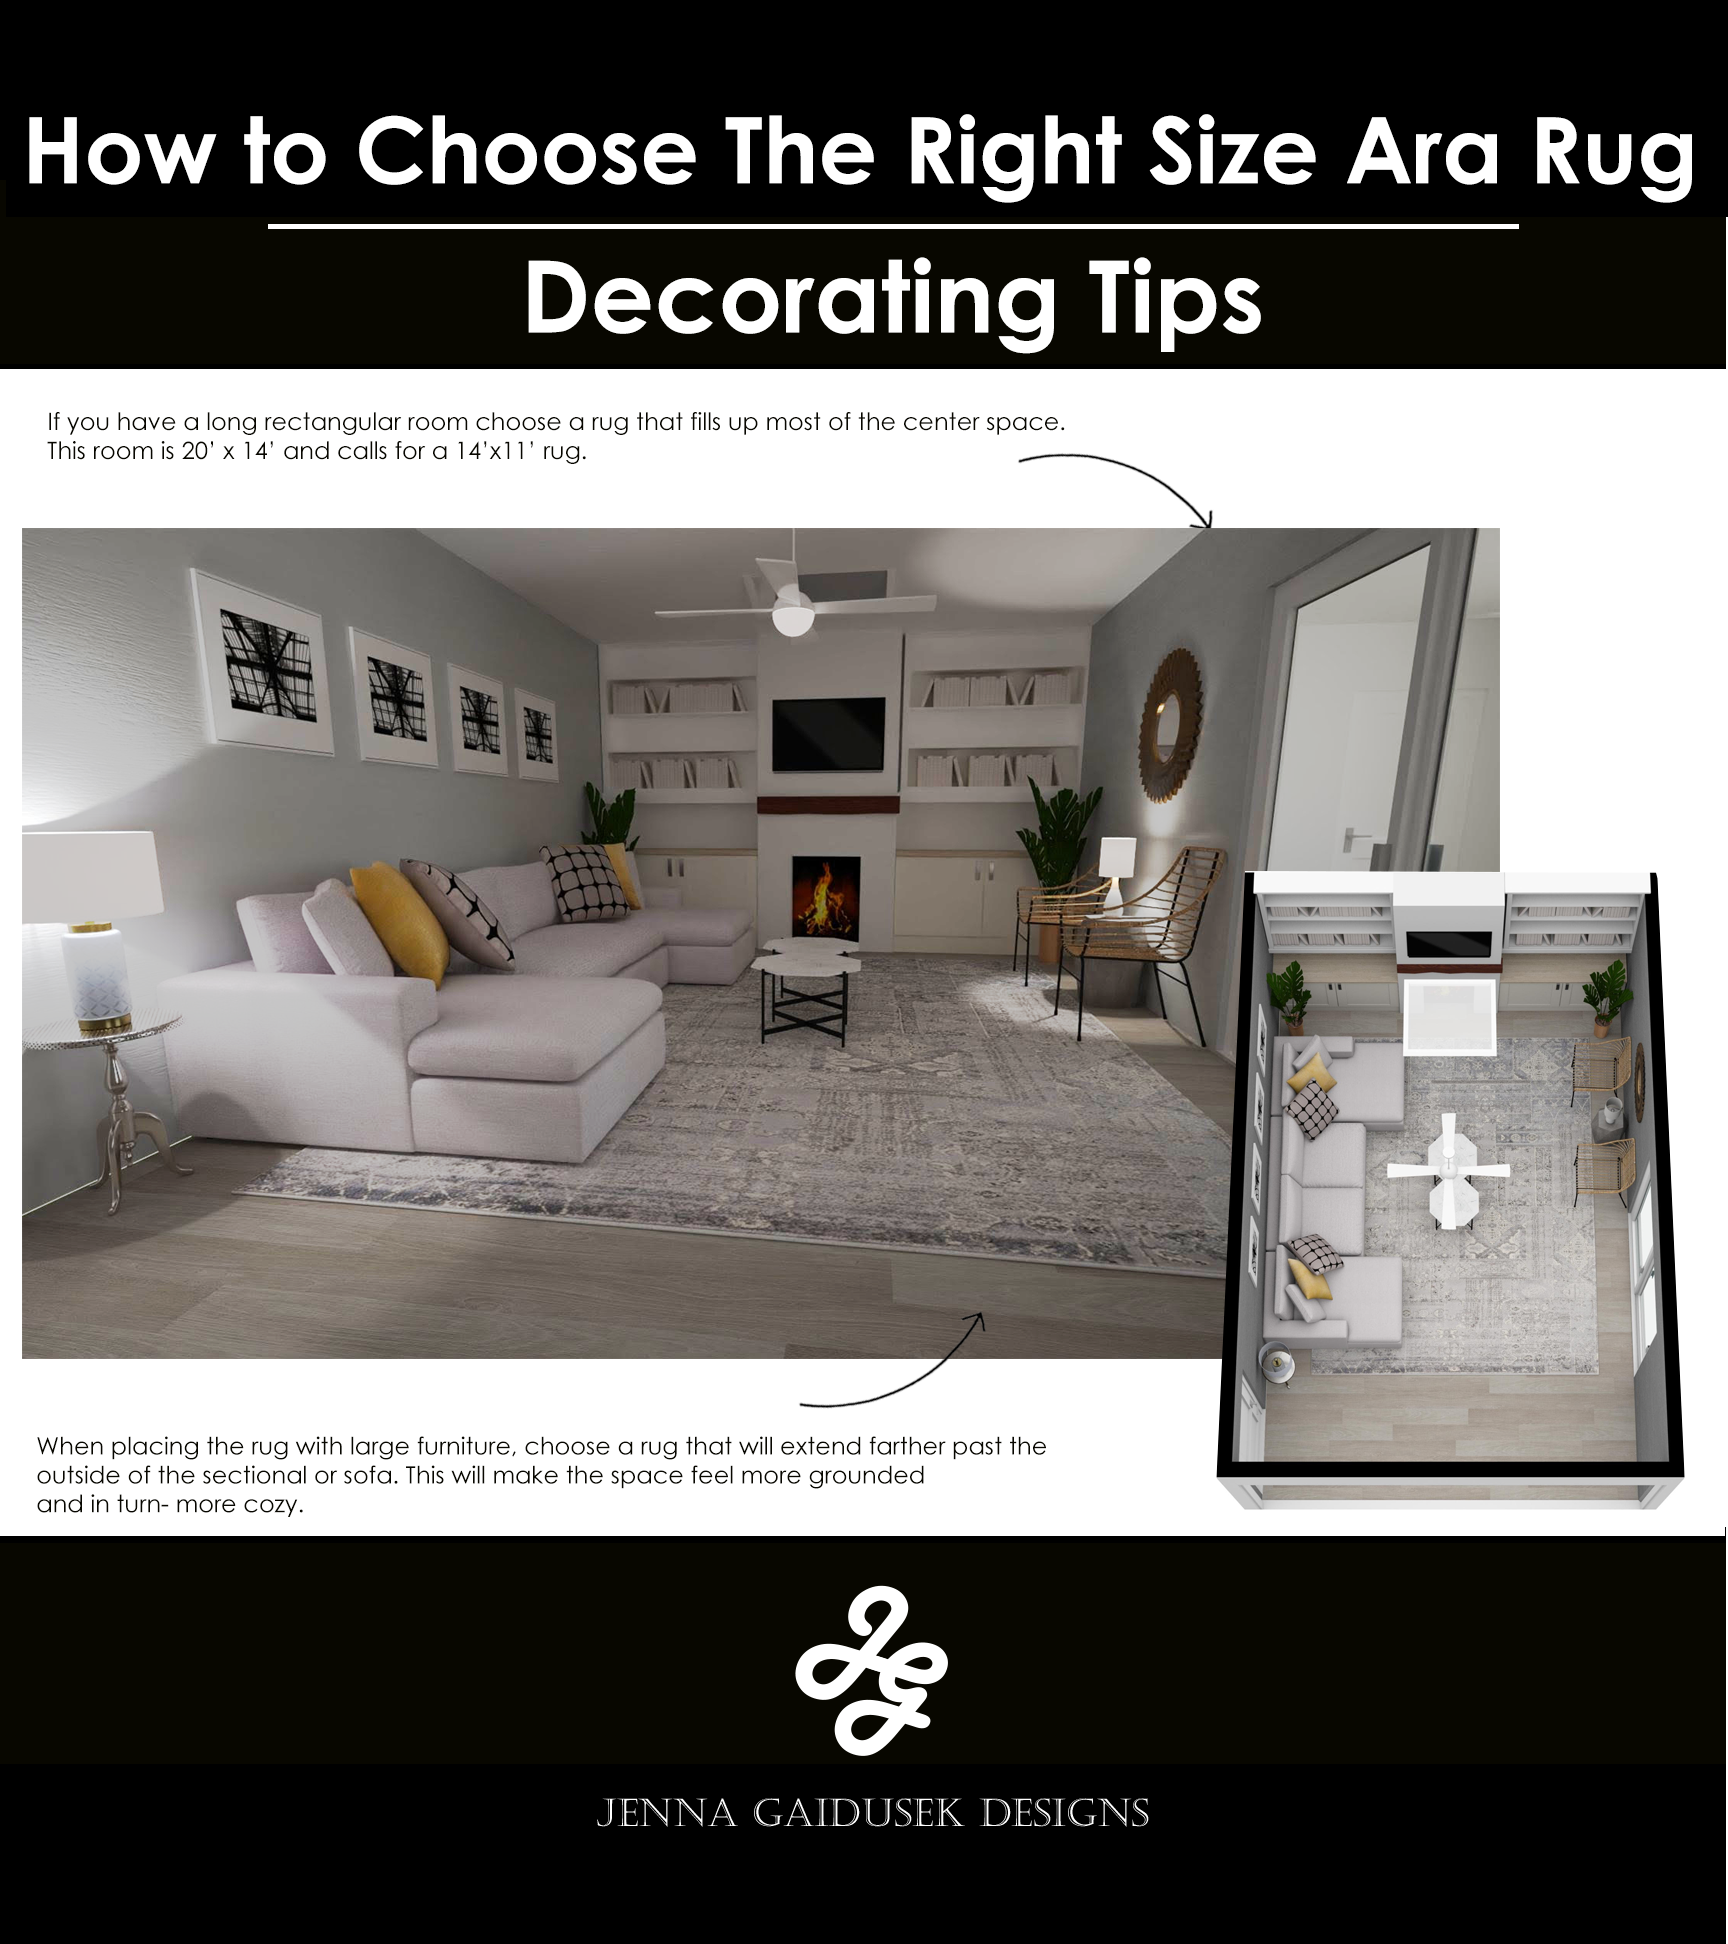 When placing the rug with large furniture, choose a rug that will extend farther past the outside of the sectional or sofa. This will make the space feel more grounded and in turn- more cozy.